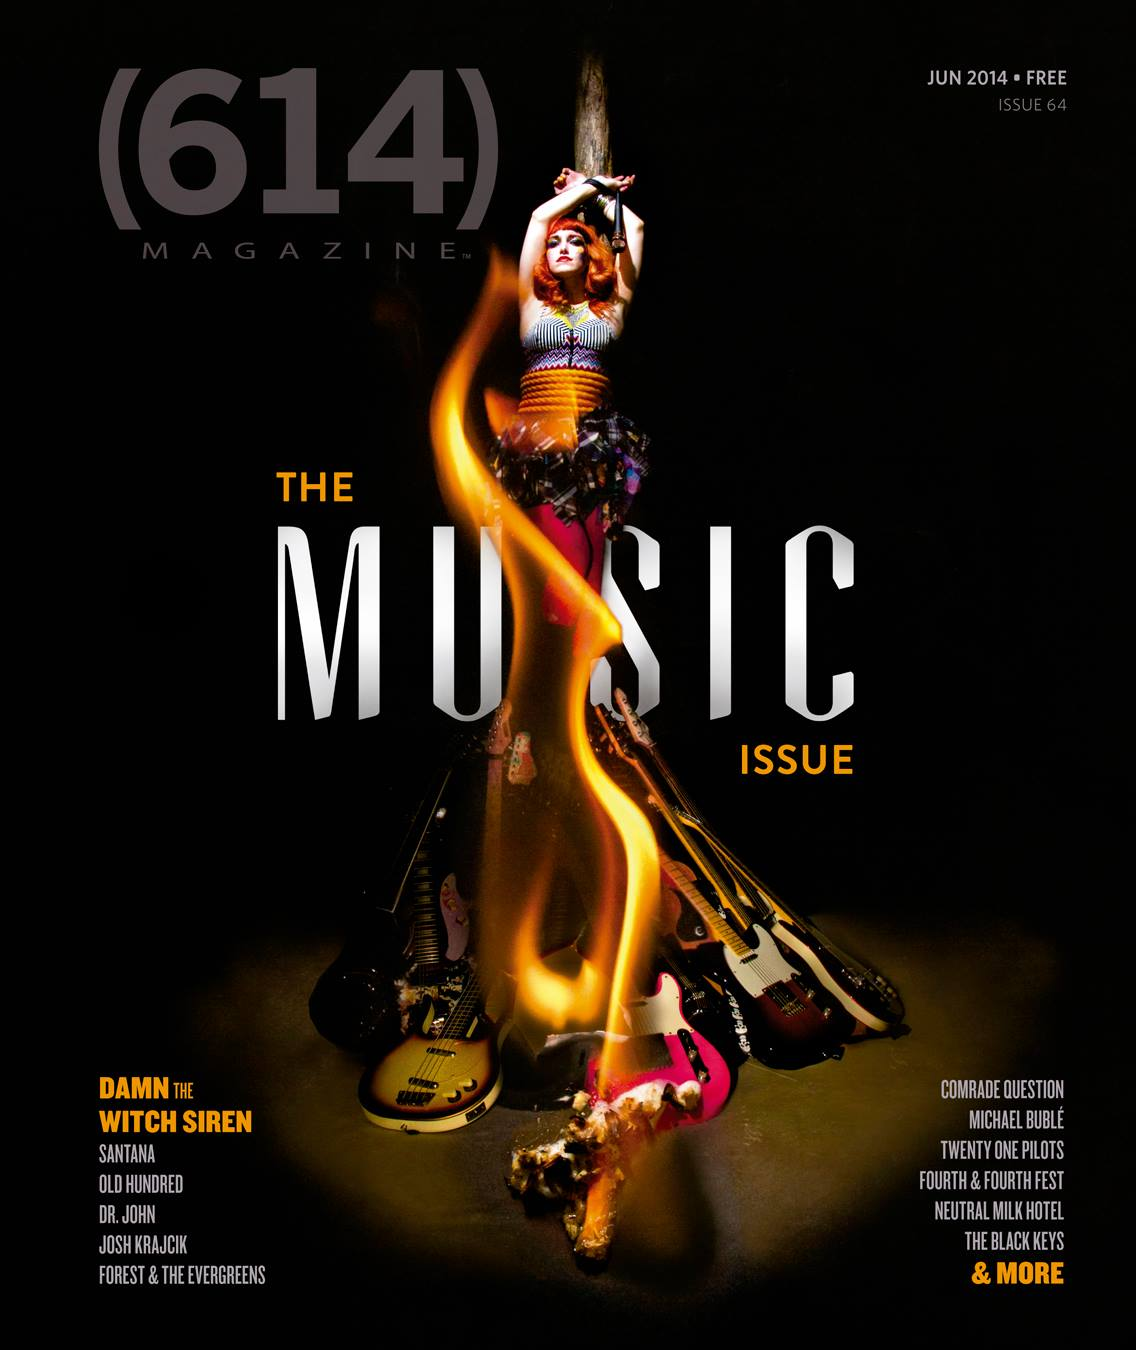 Damn the Witch Siren on the cover of 614 Magazine